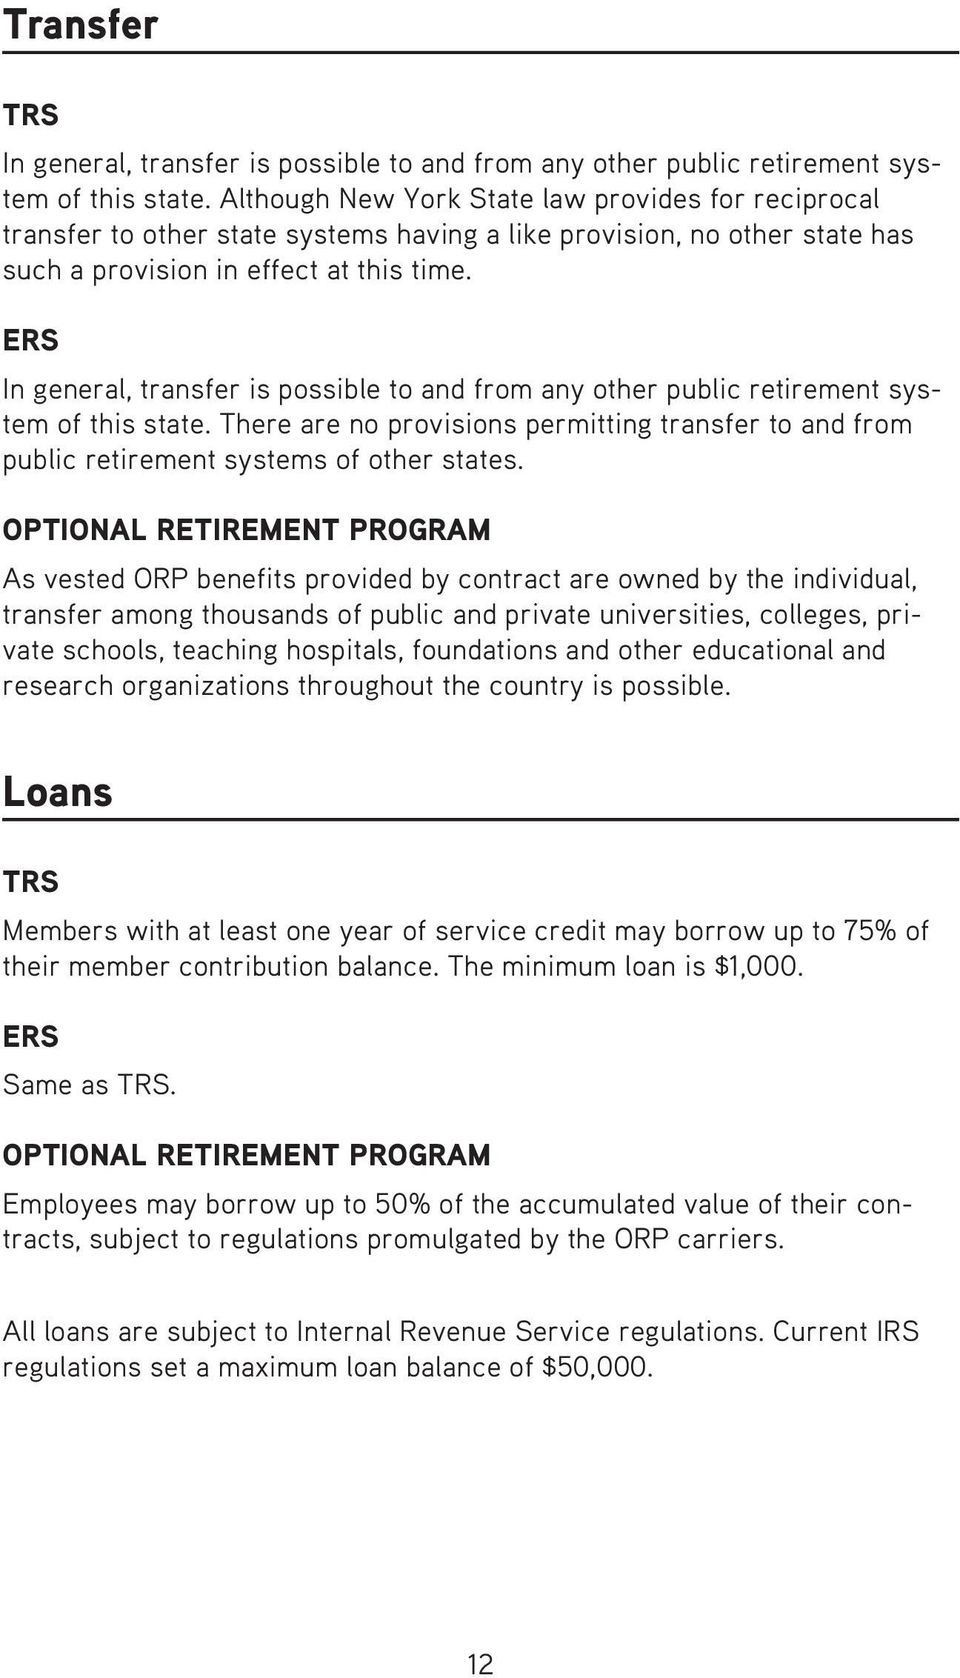 ERS In general, transfer is possible to and from any other public retirement system of this state. There are no provisions permitting transfer to and from public retirement systems of other states.